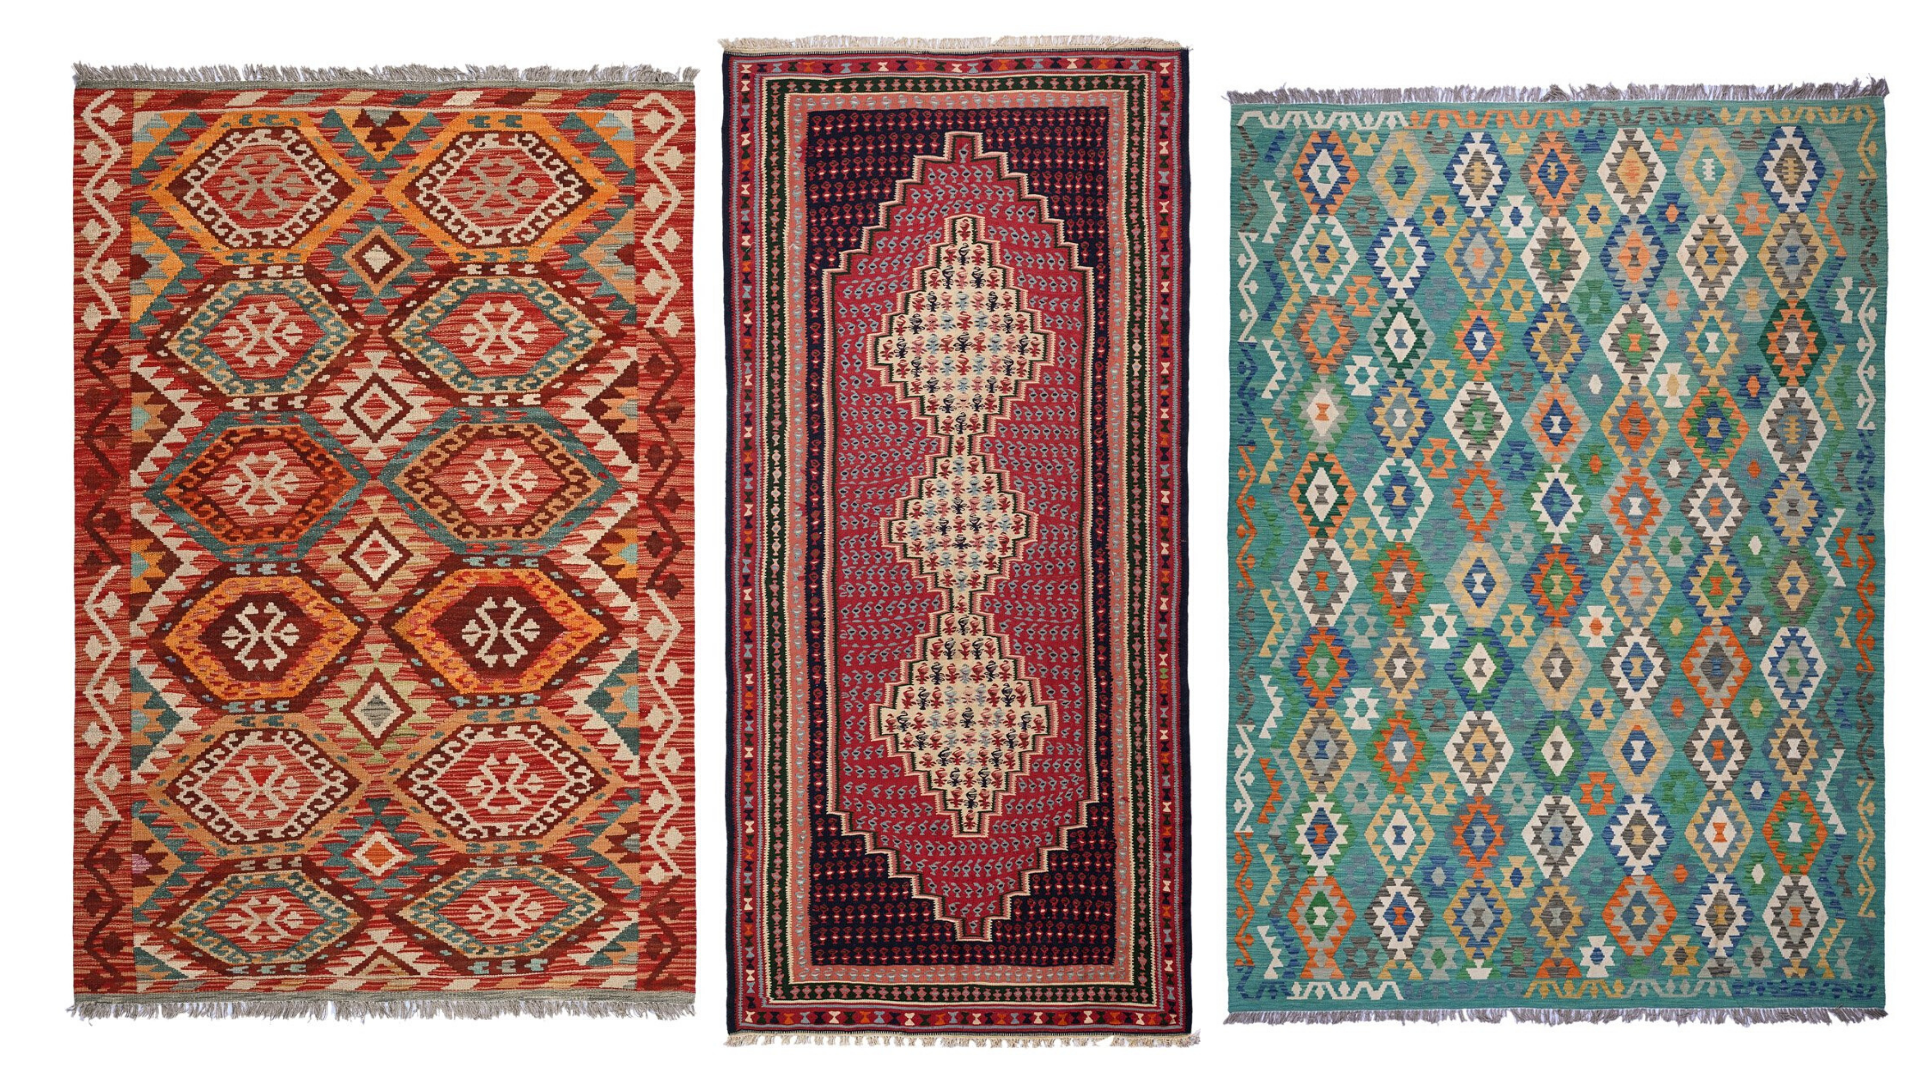 persian rugs, oriental rugs, london rugs, uk rugs, home decor, home accessories, vintage rugs, rug guide, interior design, design ideas, kitchen rugs